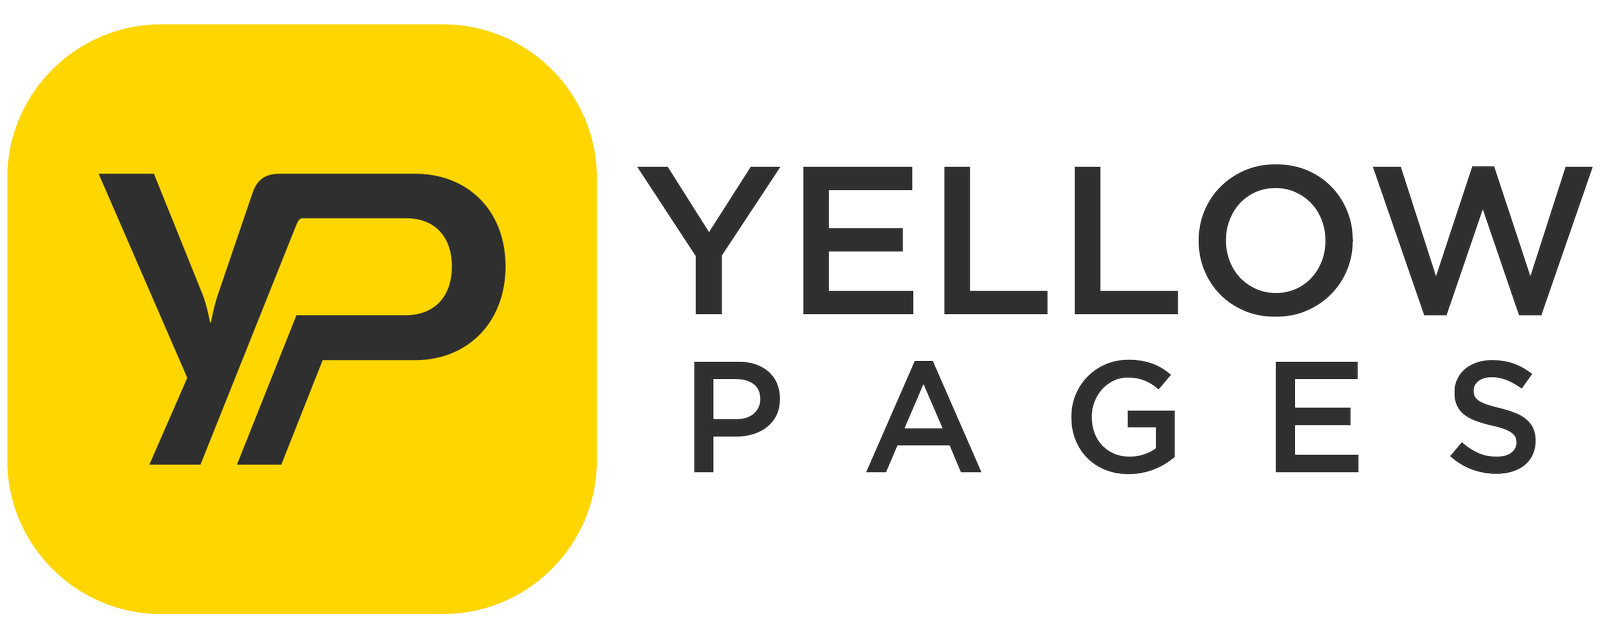 Yellow Pages Singapore